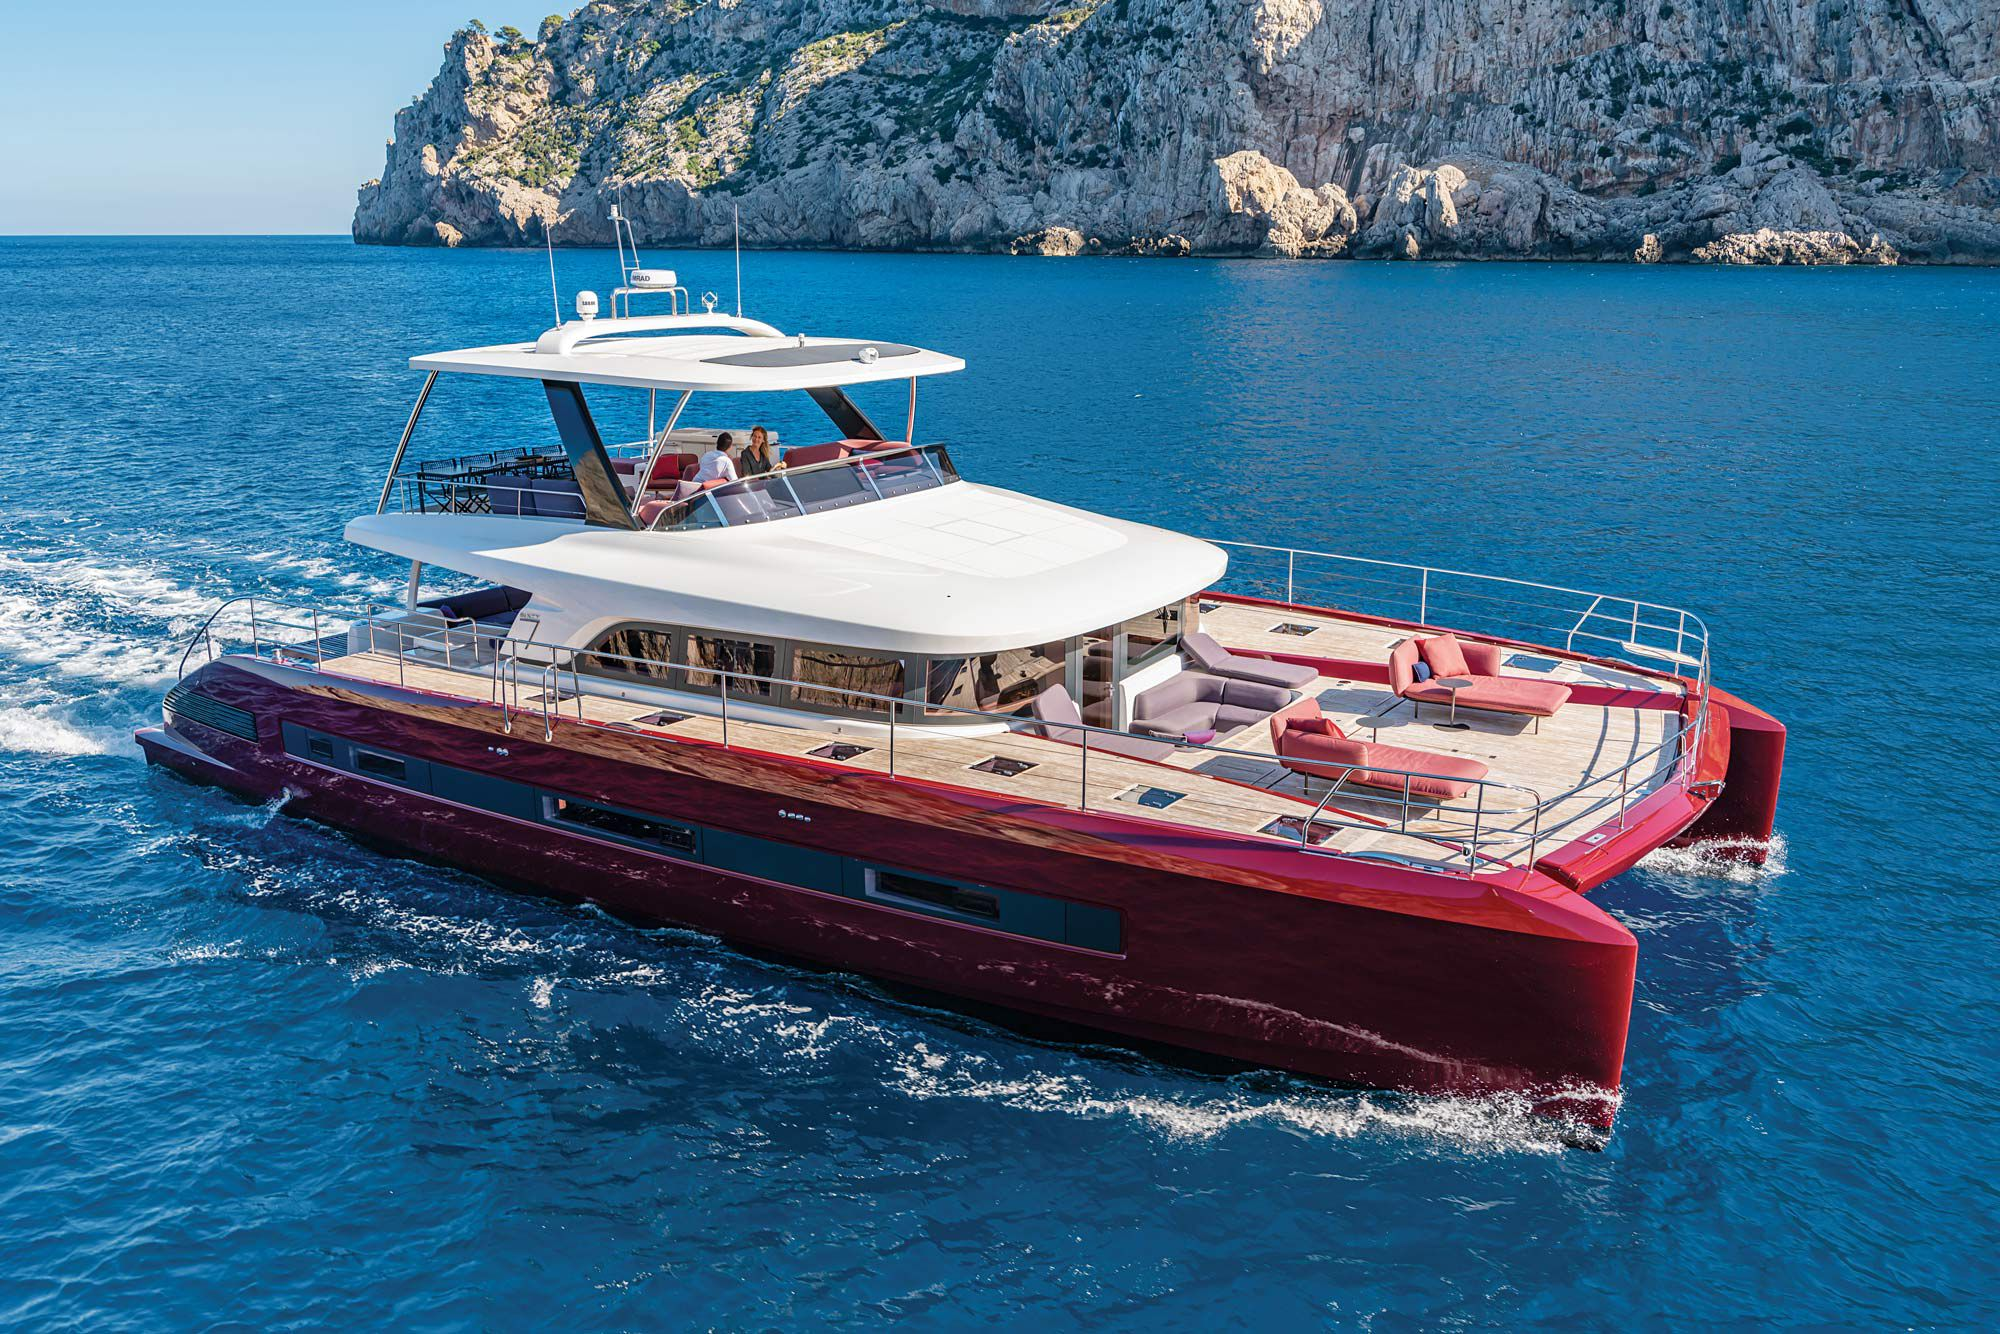 With optional twin 440 hp Yanmar diesels, the yacht we got aboard saw a top-end speed of 21 knots.